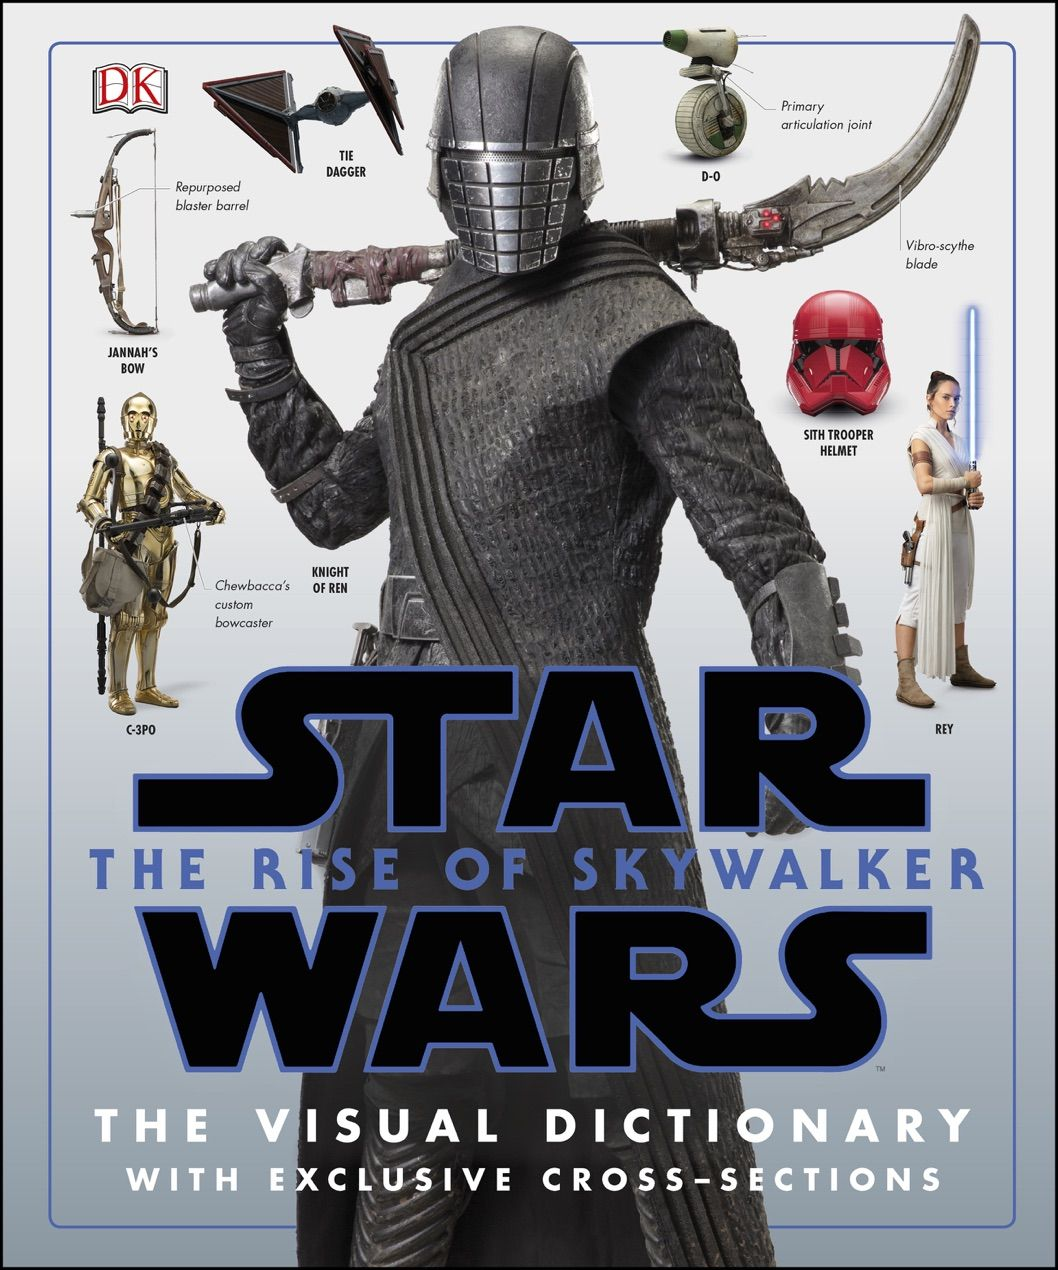 Pdf Star Wars The Rise Of Skywalker The Visual Dictionary By Pablo H Now Available Free Ebooks Pdf Epub Mobi In 2020 Star Wars Books Visual Dictionary Knights Of Ren